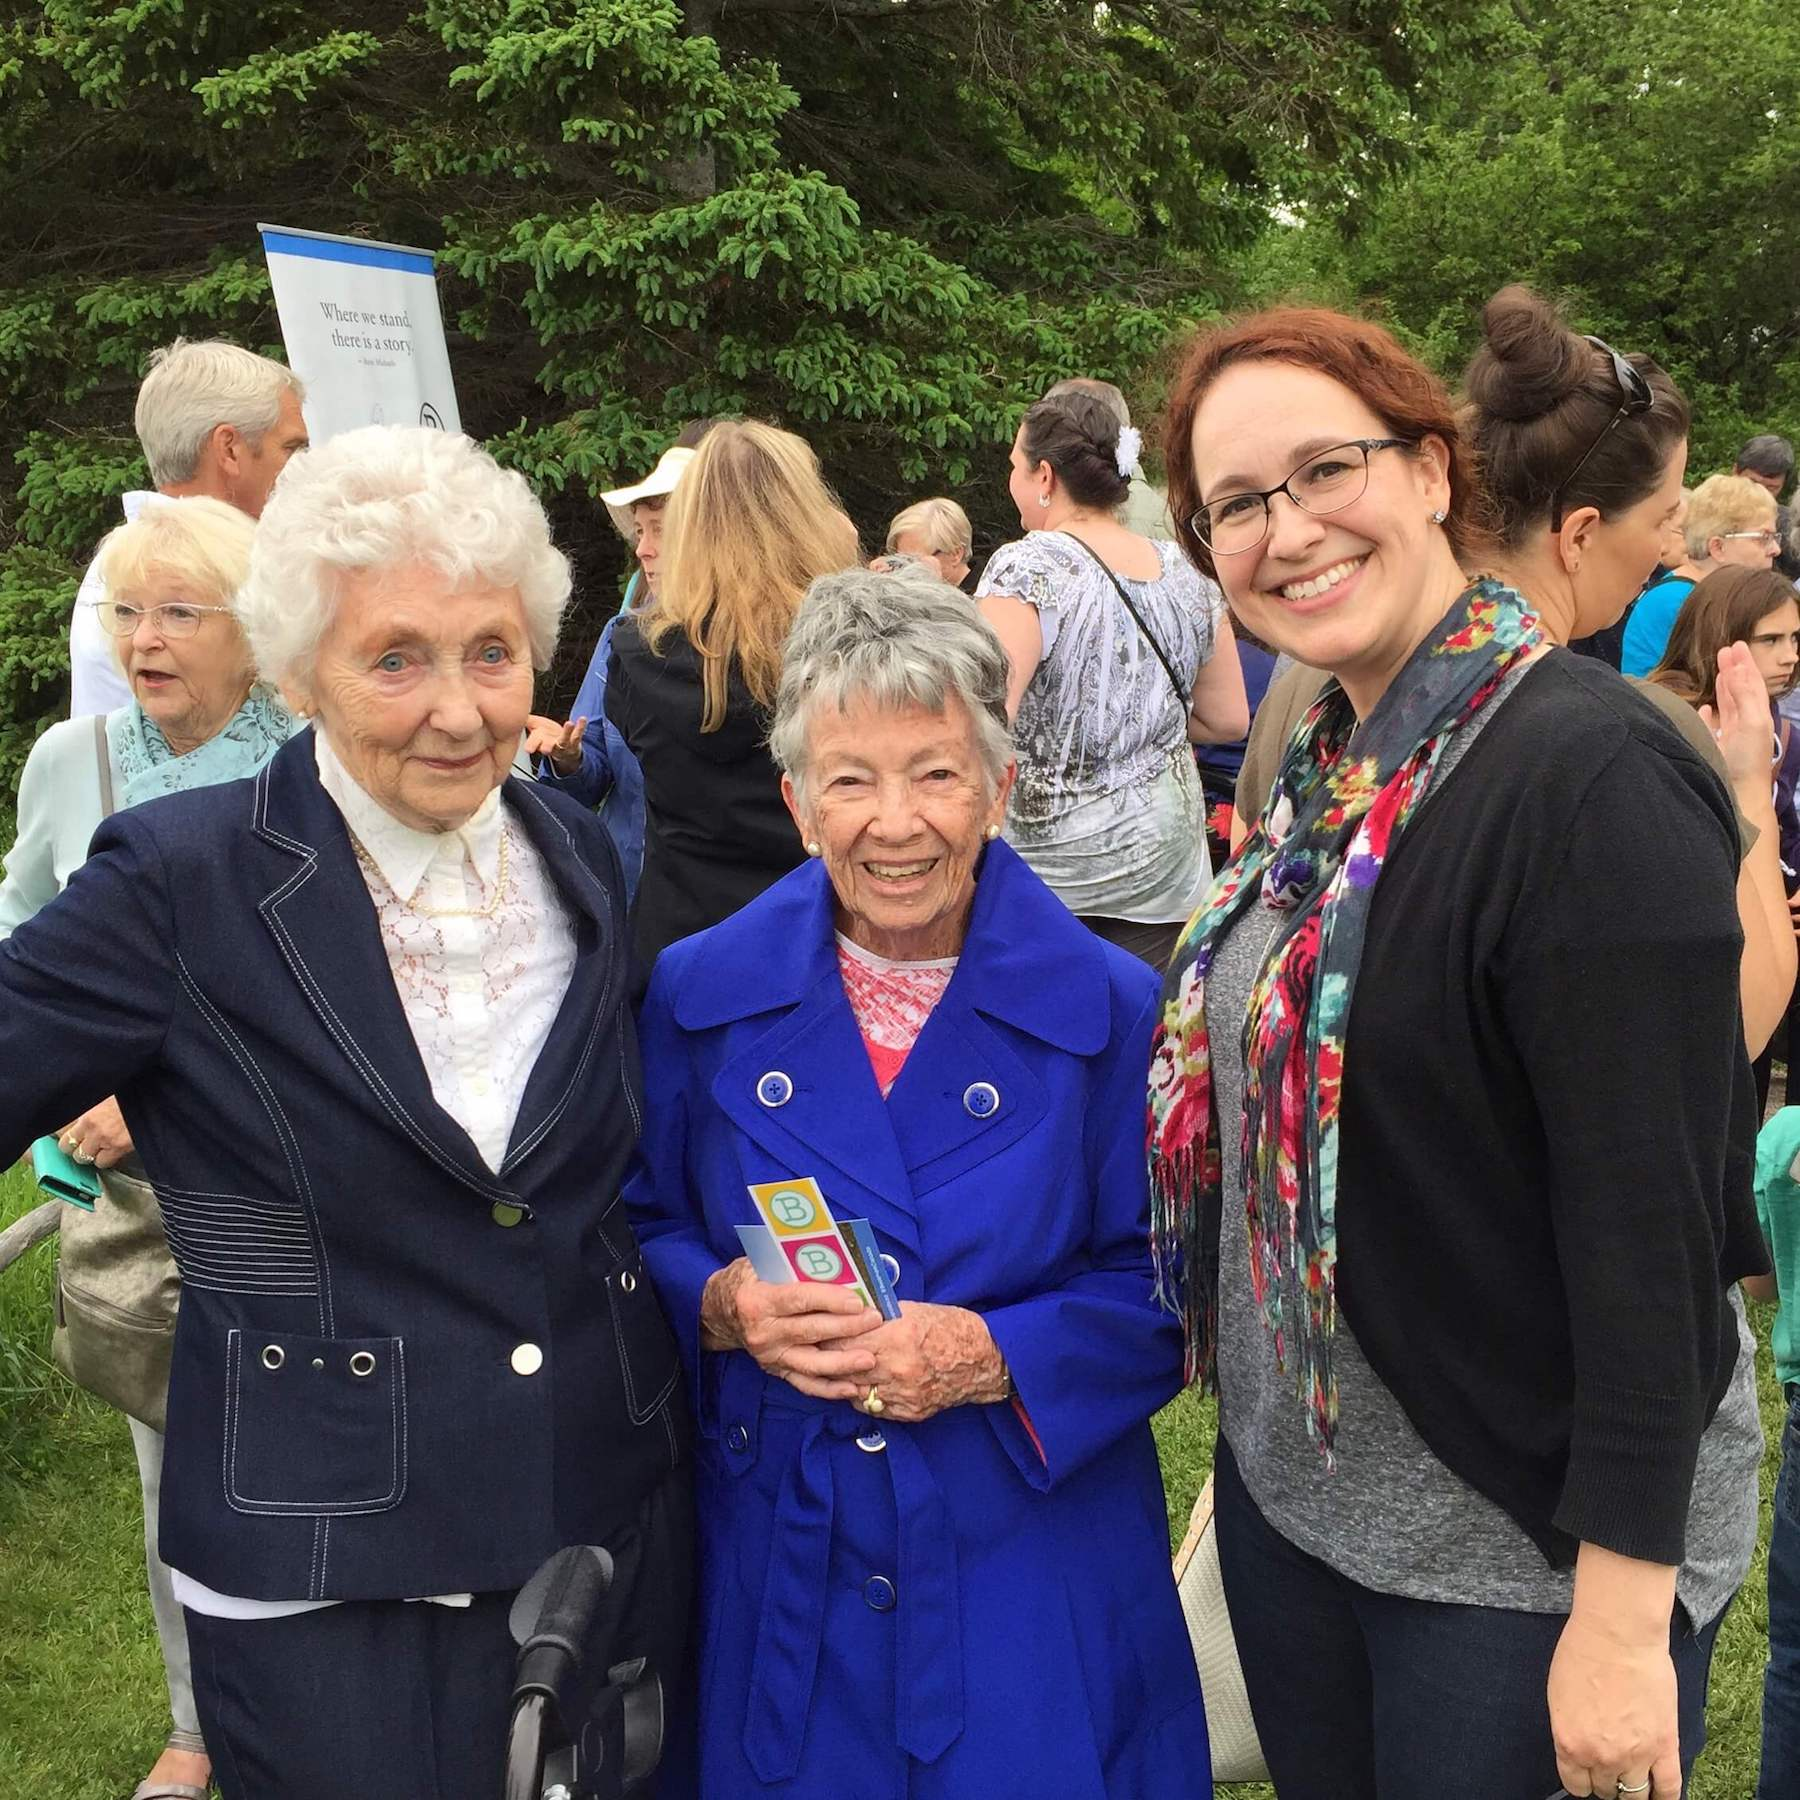 With Mrs. Jennie Macneill (left) and Dr. Elizabeth Waterston (centre) at the unveiling of the new @bookmarkcanada plaque for L.M. Montgomery at the Macneill Homestead in North Rustico, PEI.